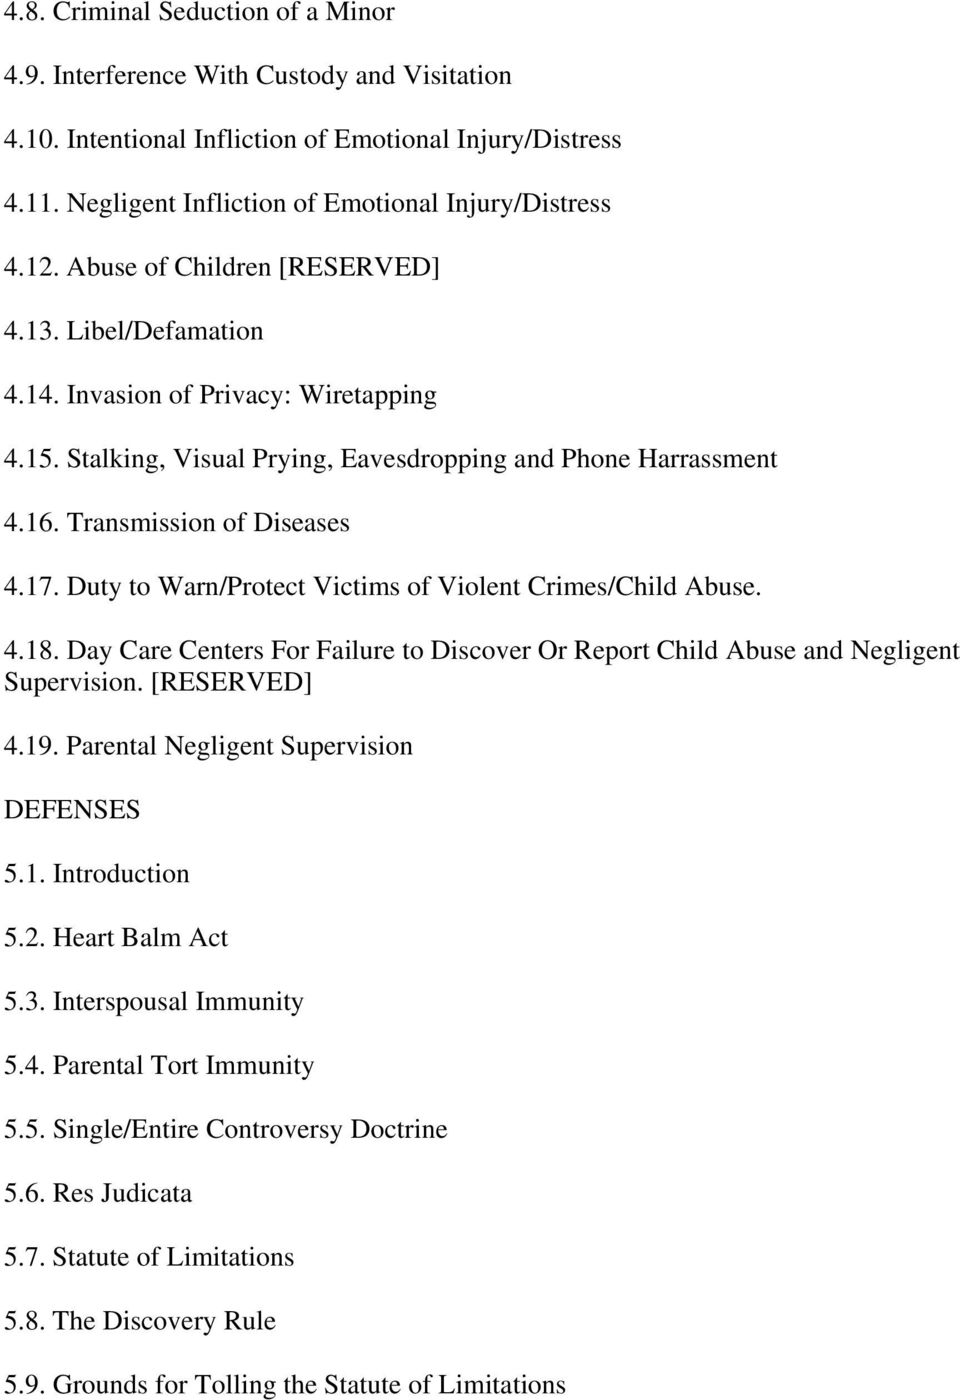 Duty to Warn/Protect Victims of Violent Crimes/Child Abuse. 4.18. Day Care Centers For Failure to Discover Or Report Child Abuse and Negligent Supervision. [RESERVED] 4.19.